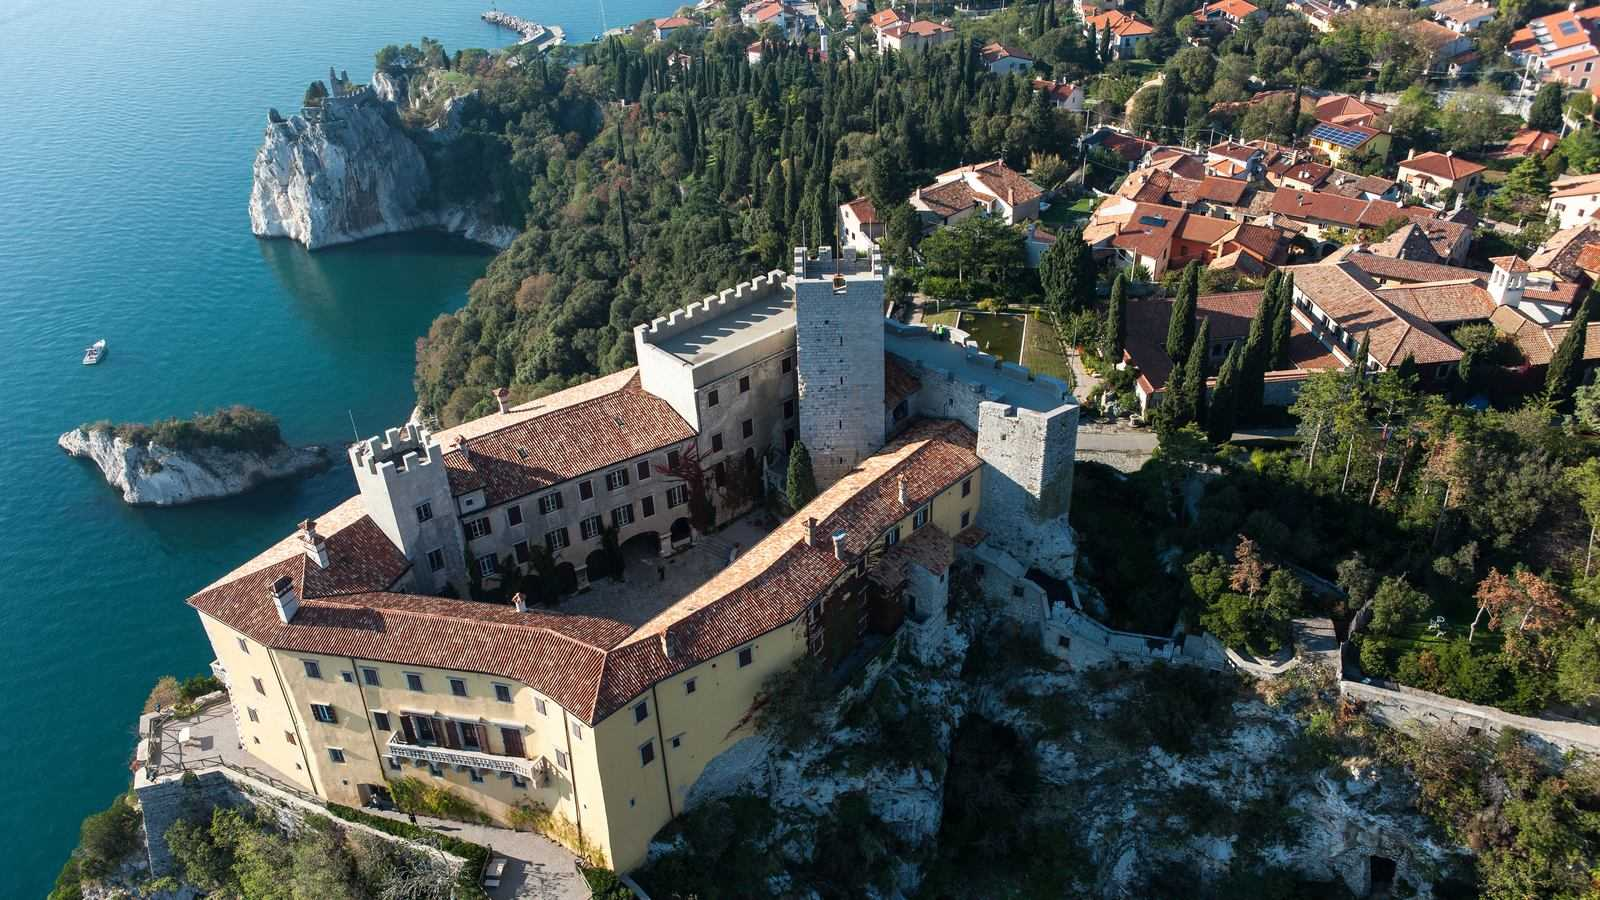 Aerial view of Duino Castle